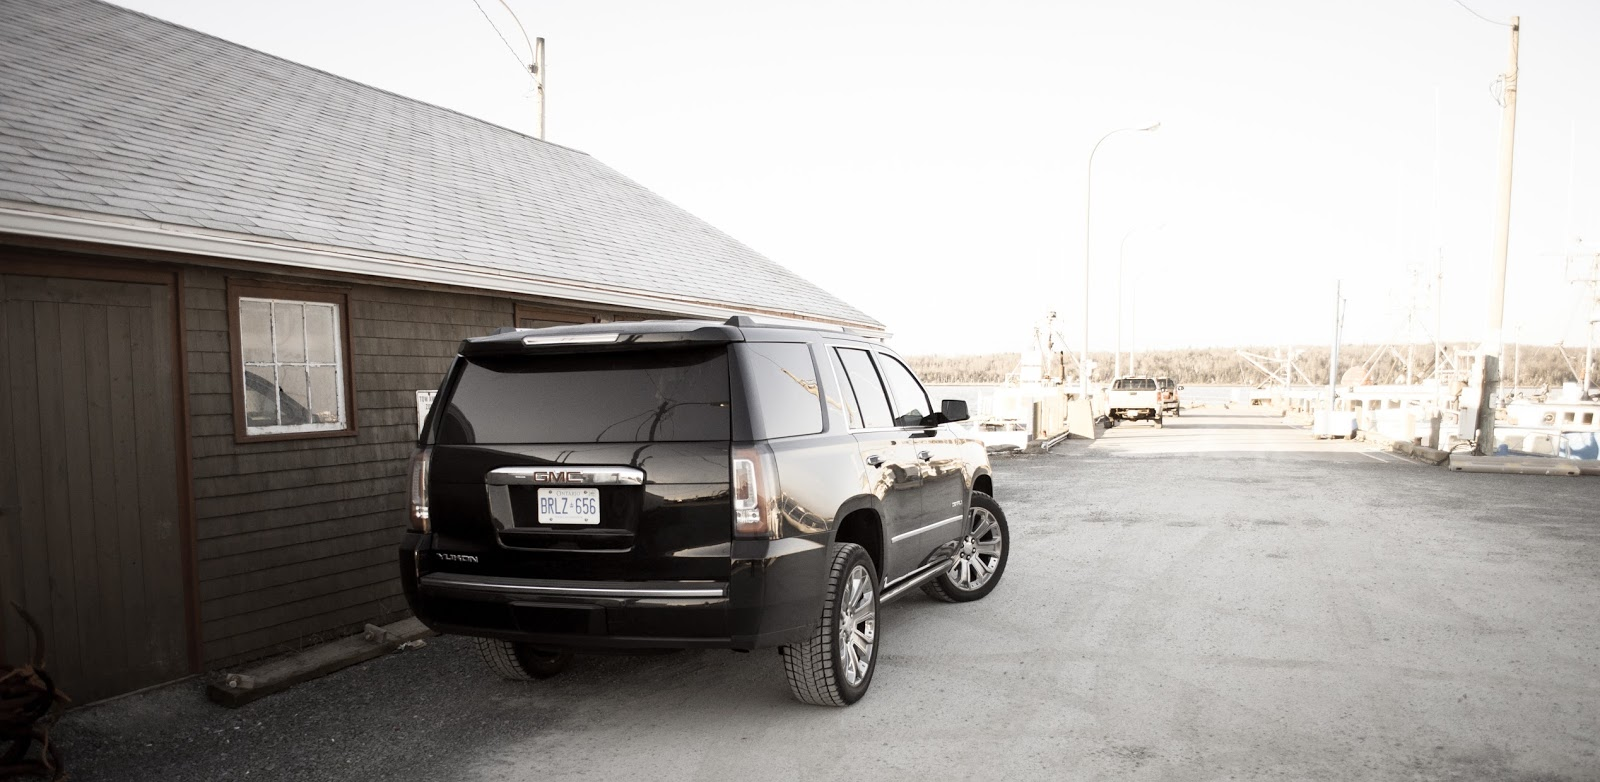 2015 GMC yukon Denali rear